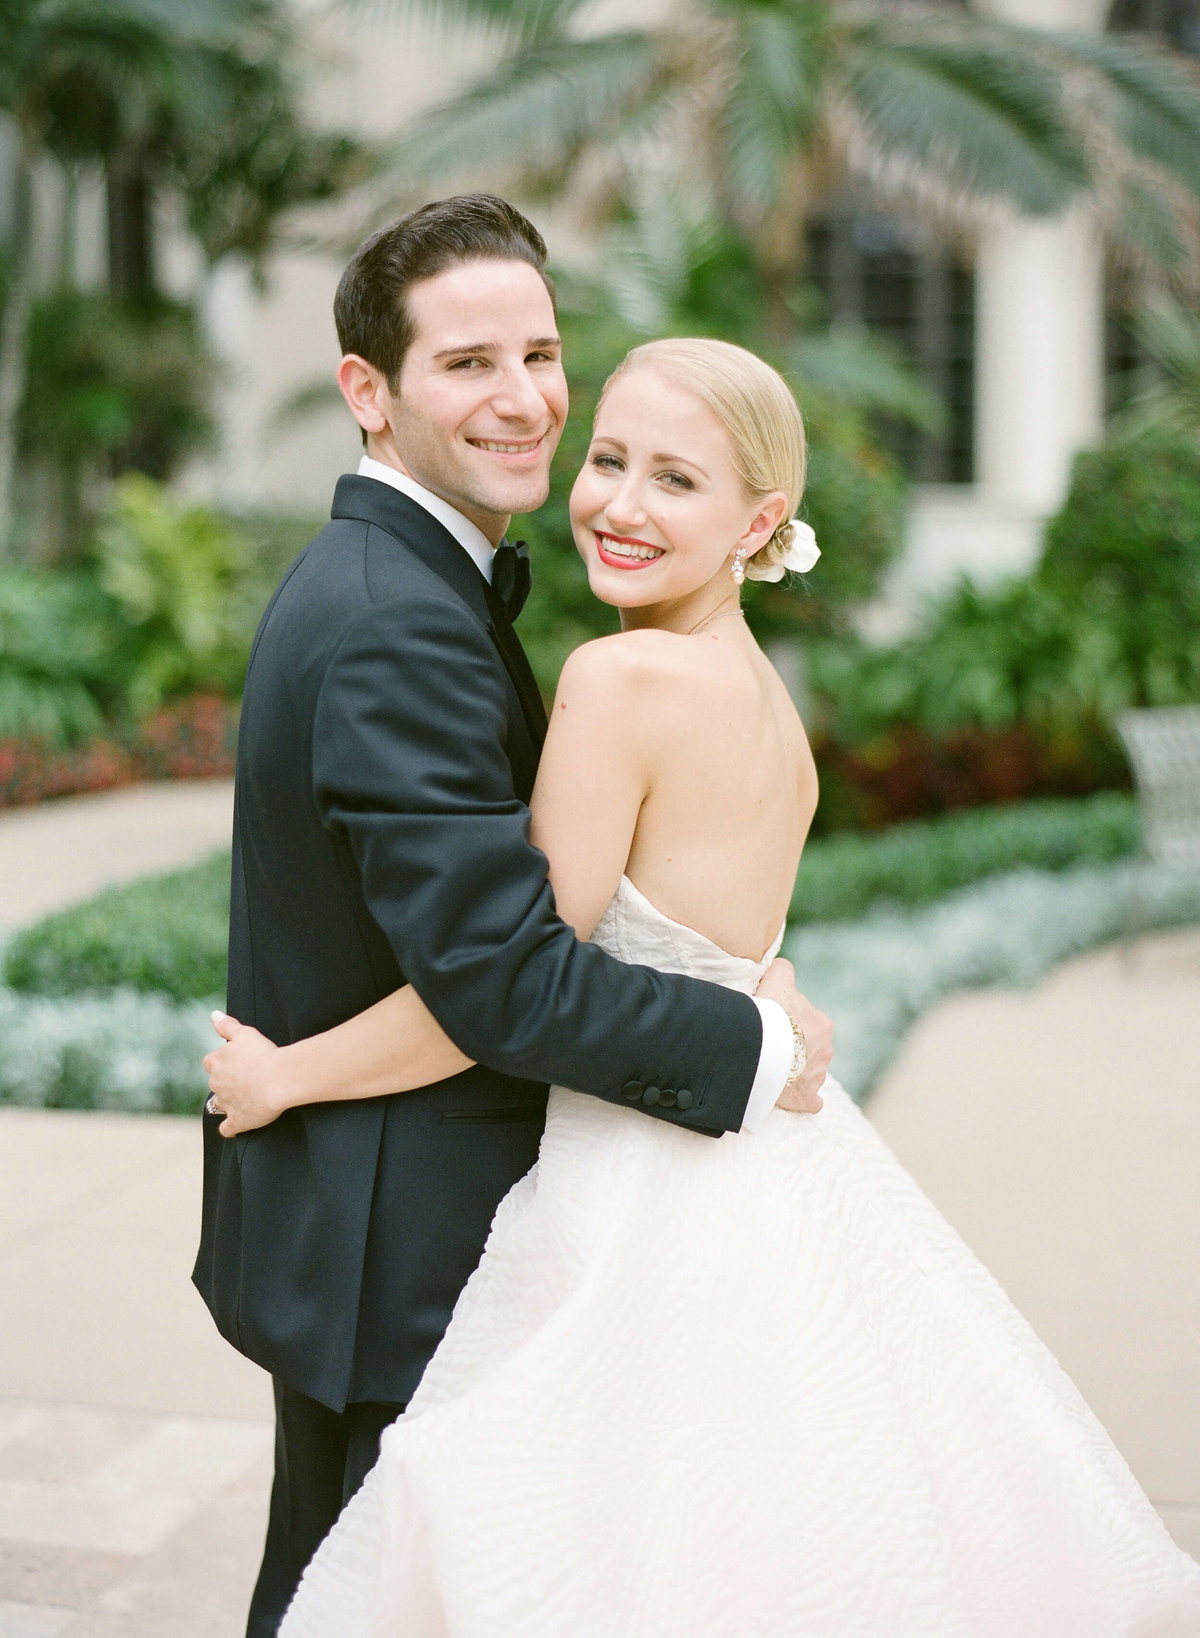 17-KTMerry-weddings-pre-ceremony-portrait-Palm-Beach